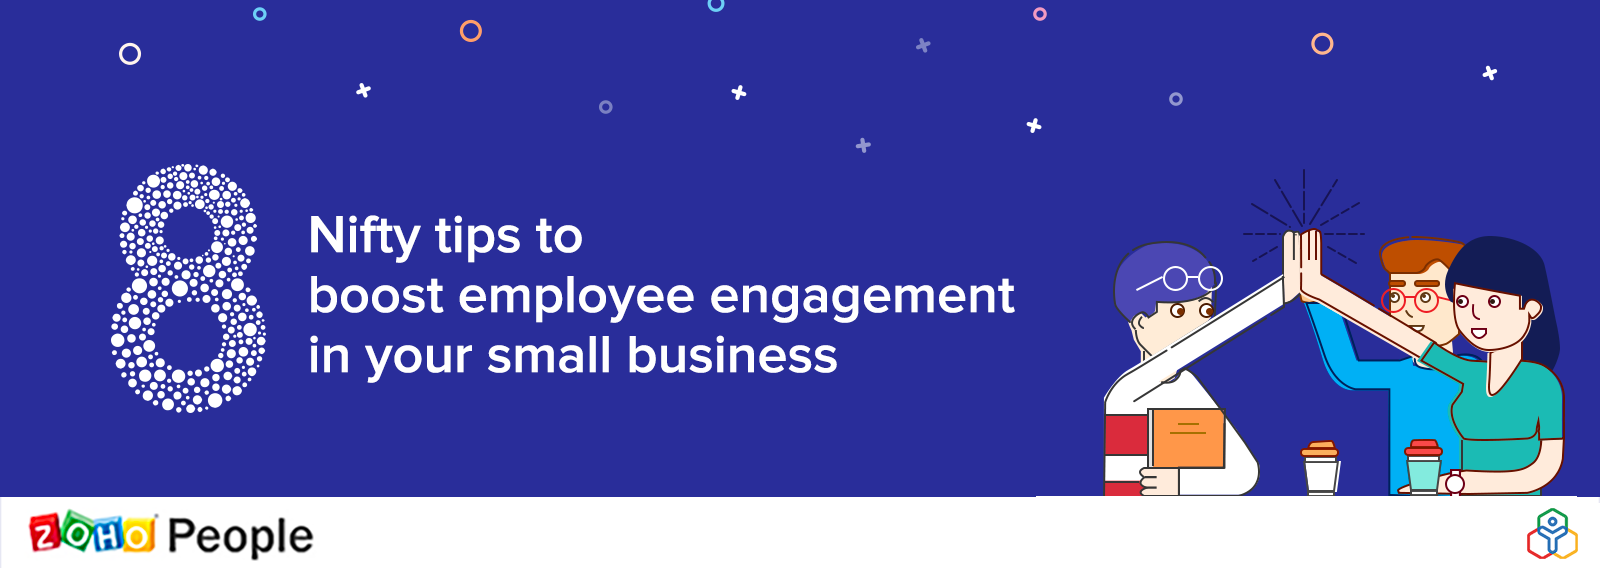 Go the extra mile:      8 nifty tips to boost employee engagementin your small business